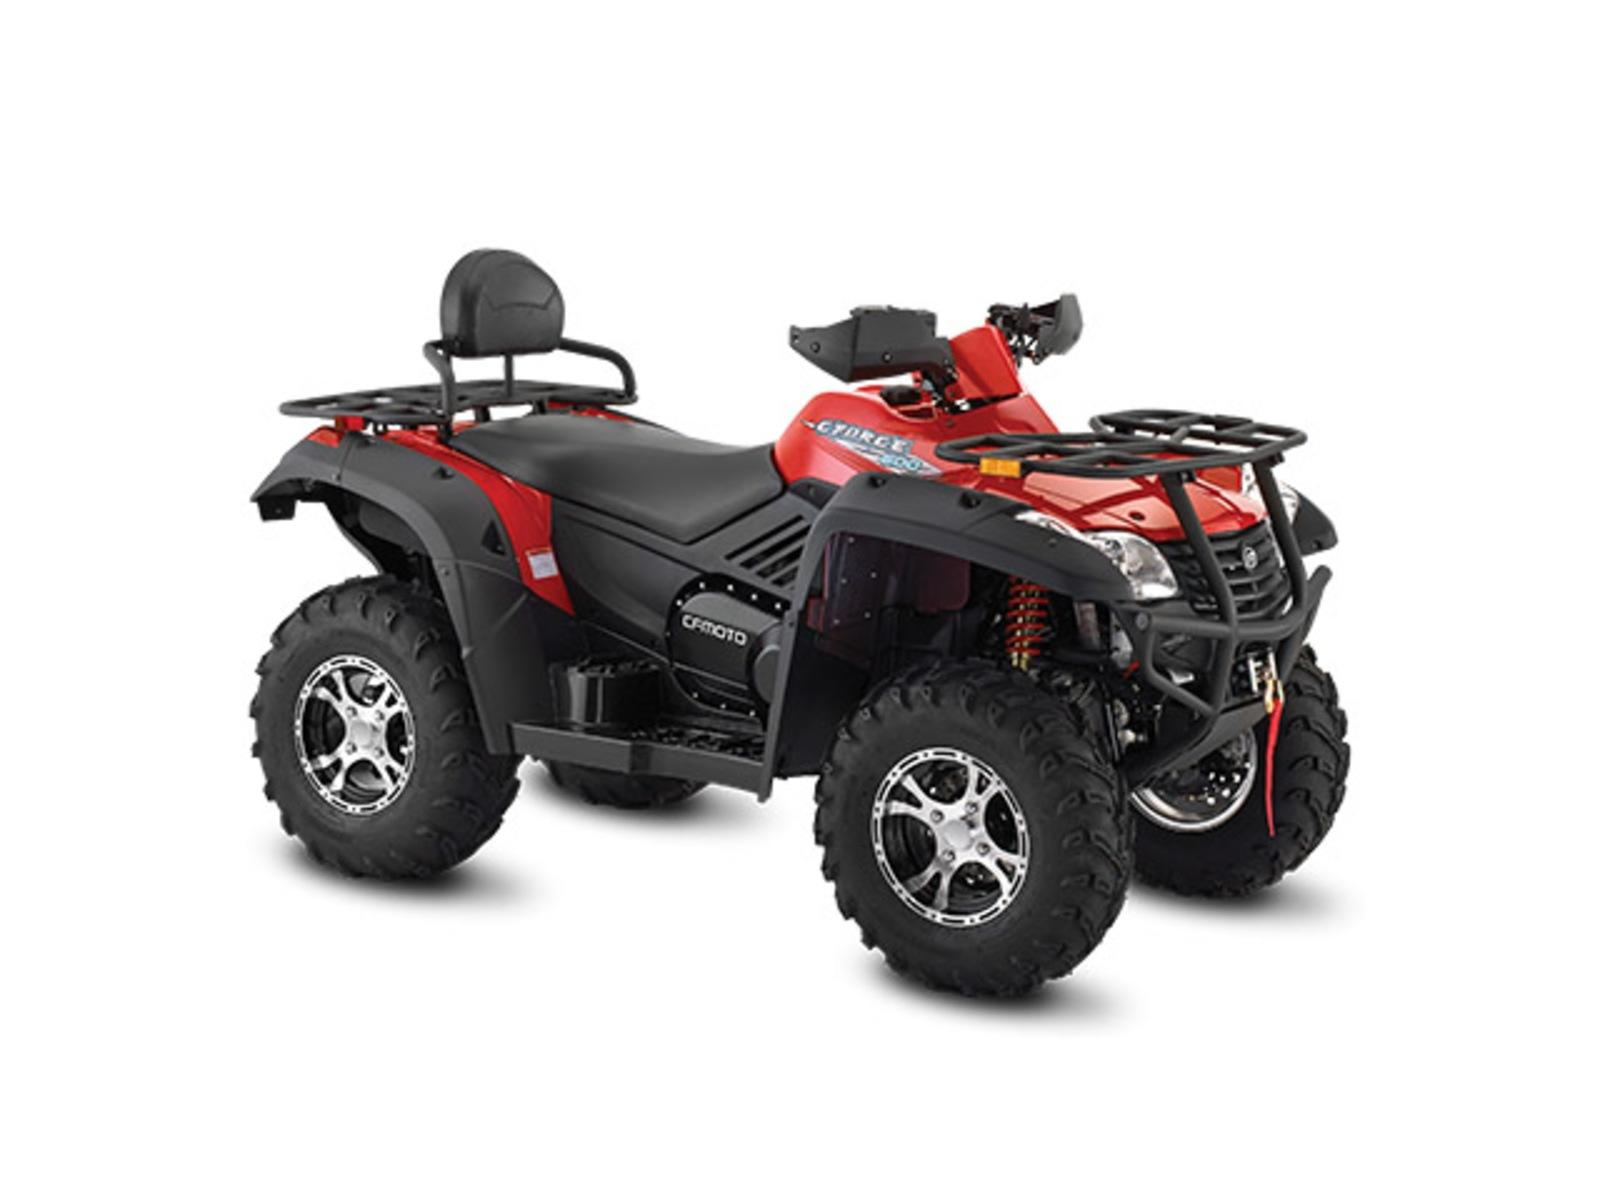 Cf Moto 600 Wiring Diagrams Schematics E Charm 150cc Diagram Cfmoto Reviews Specs Prices Top Speed On Side By Beta